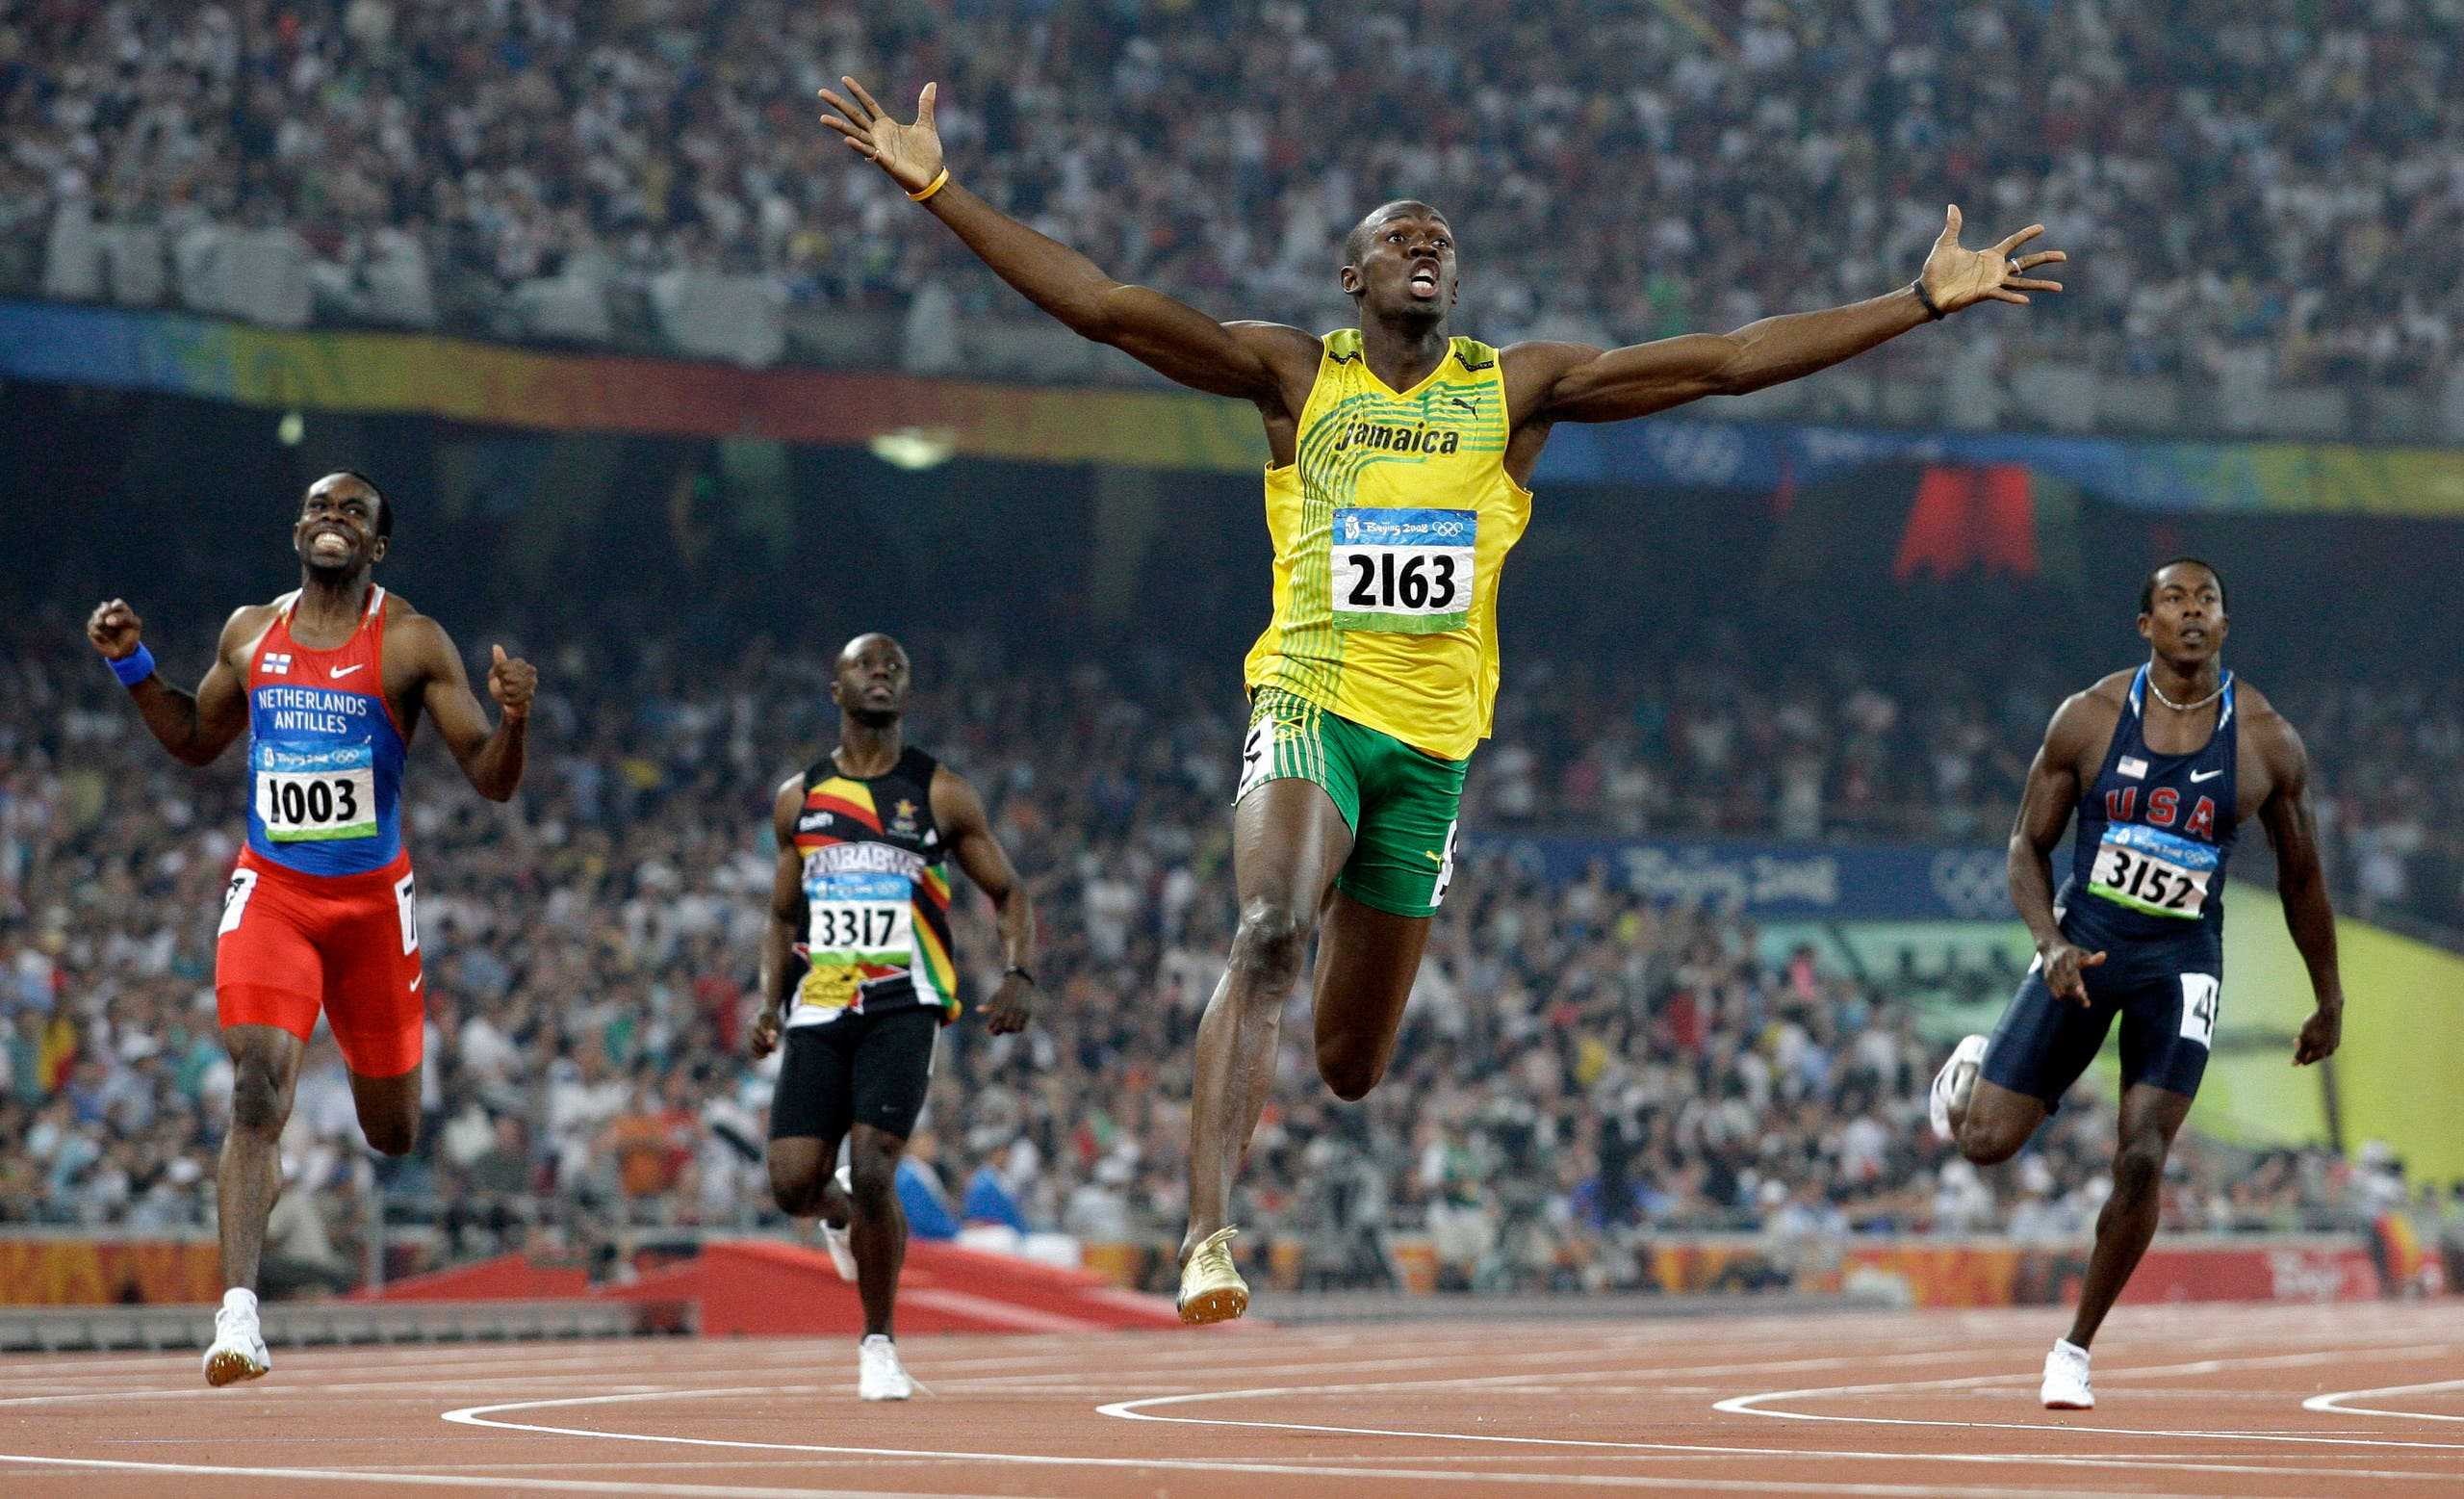 Jamaica's Usain Bolt crosses the finish line to win the gold in the men's 200-meter final during the athletics competitions in the National Stadium at the Beijing 2008 Olympics in Beijing. (AP)